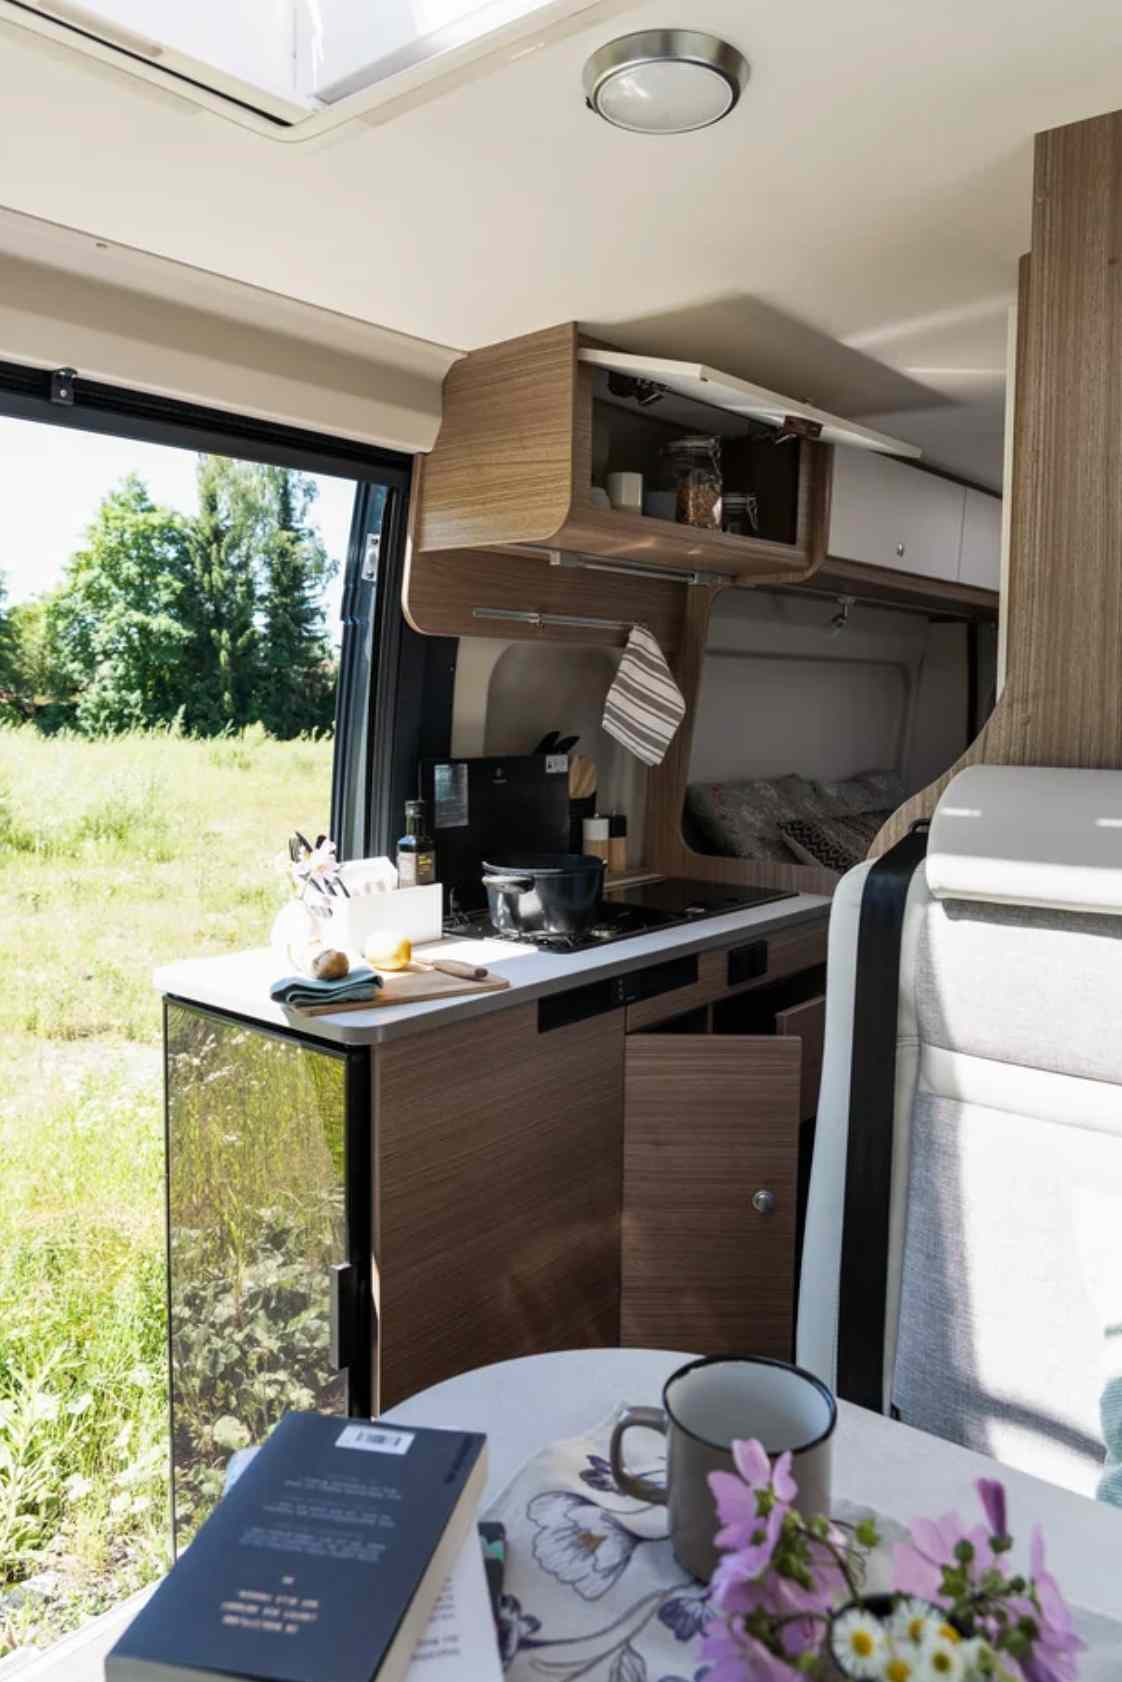 Rent Easy City Extra camper